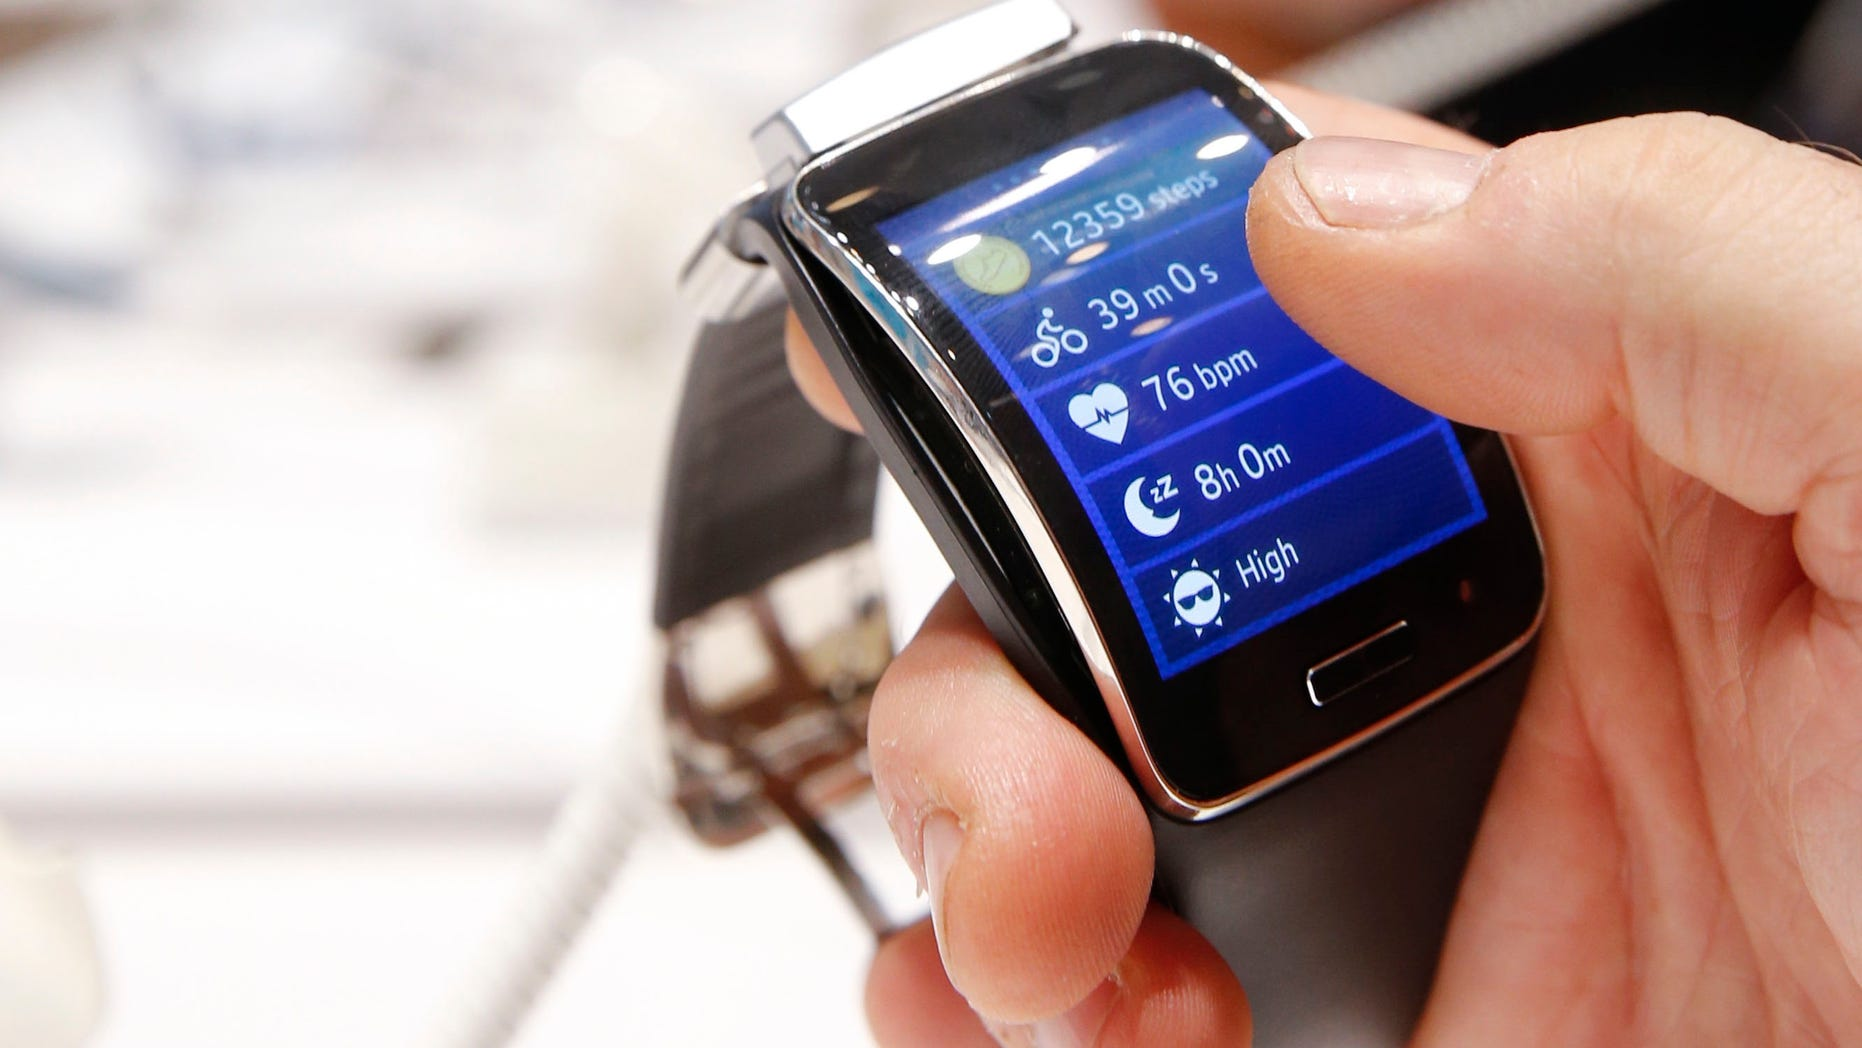 A visitor holds a Samsung Gear S smartwatch at the IFA consumer technology fair in Berlin, September 5, 2014.